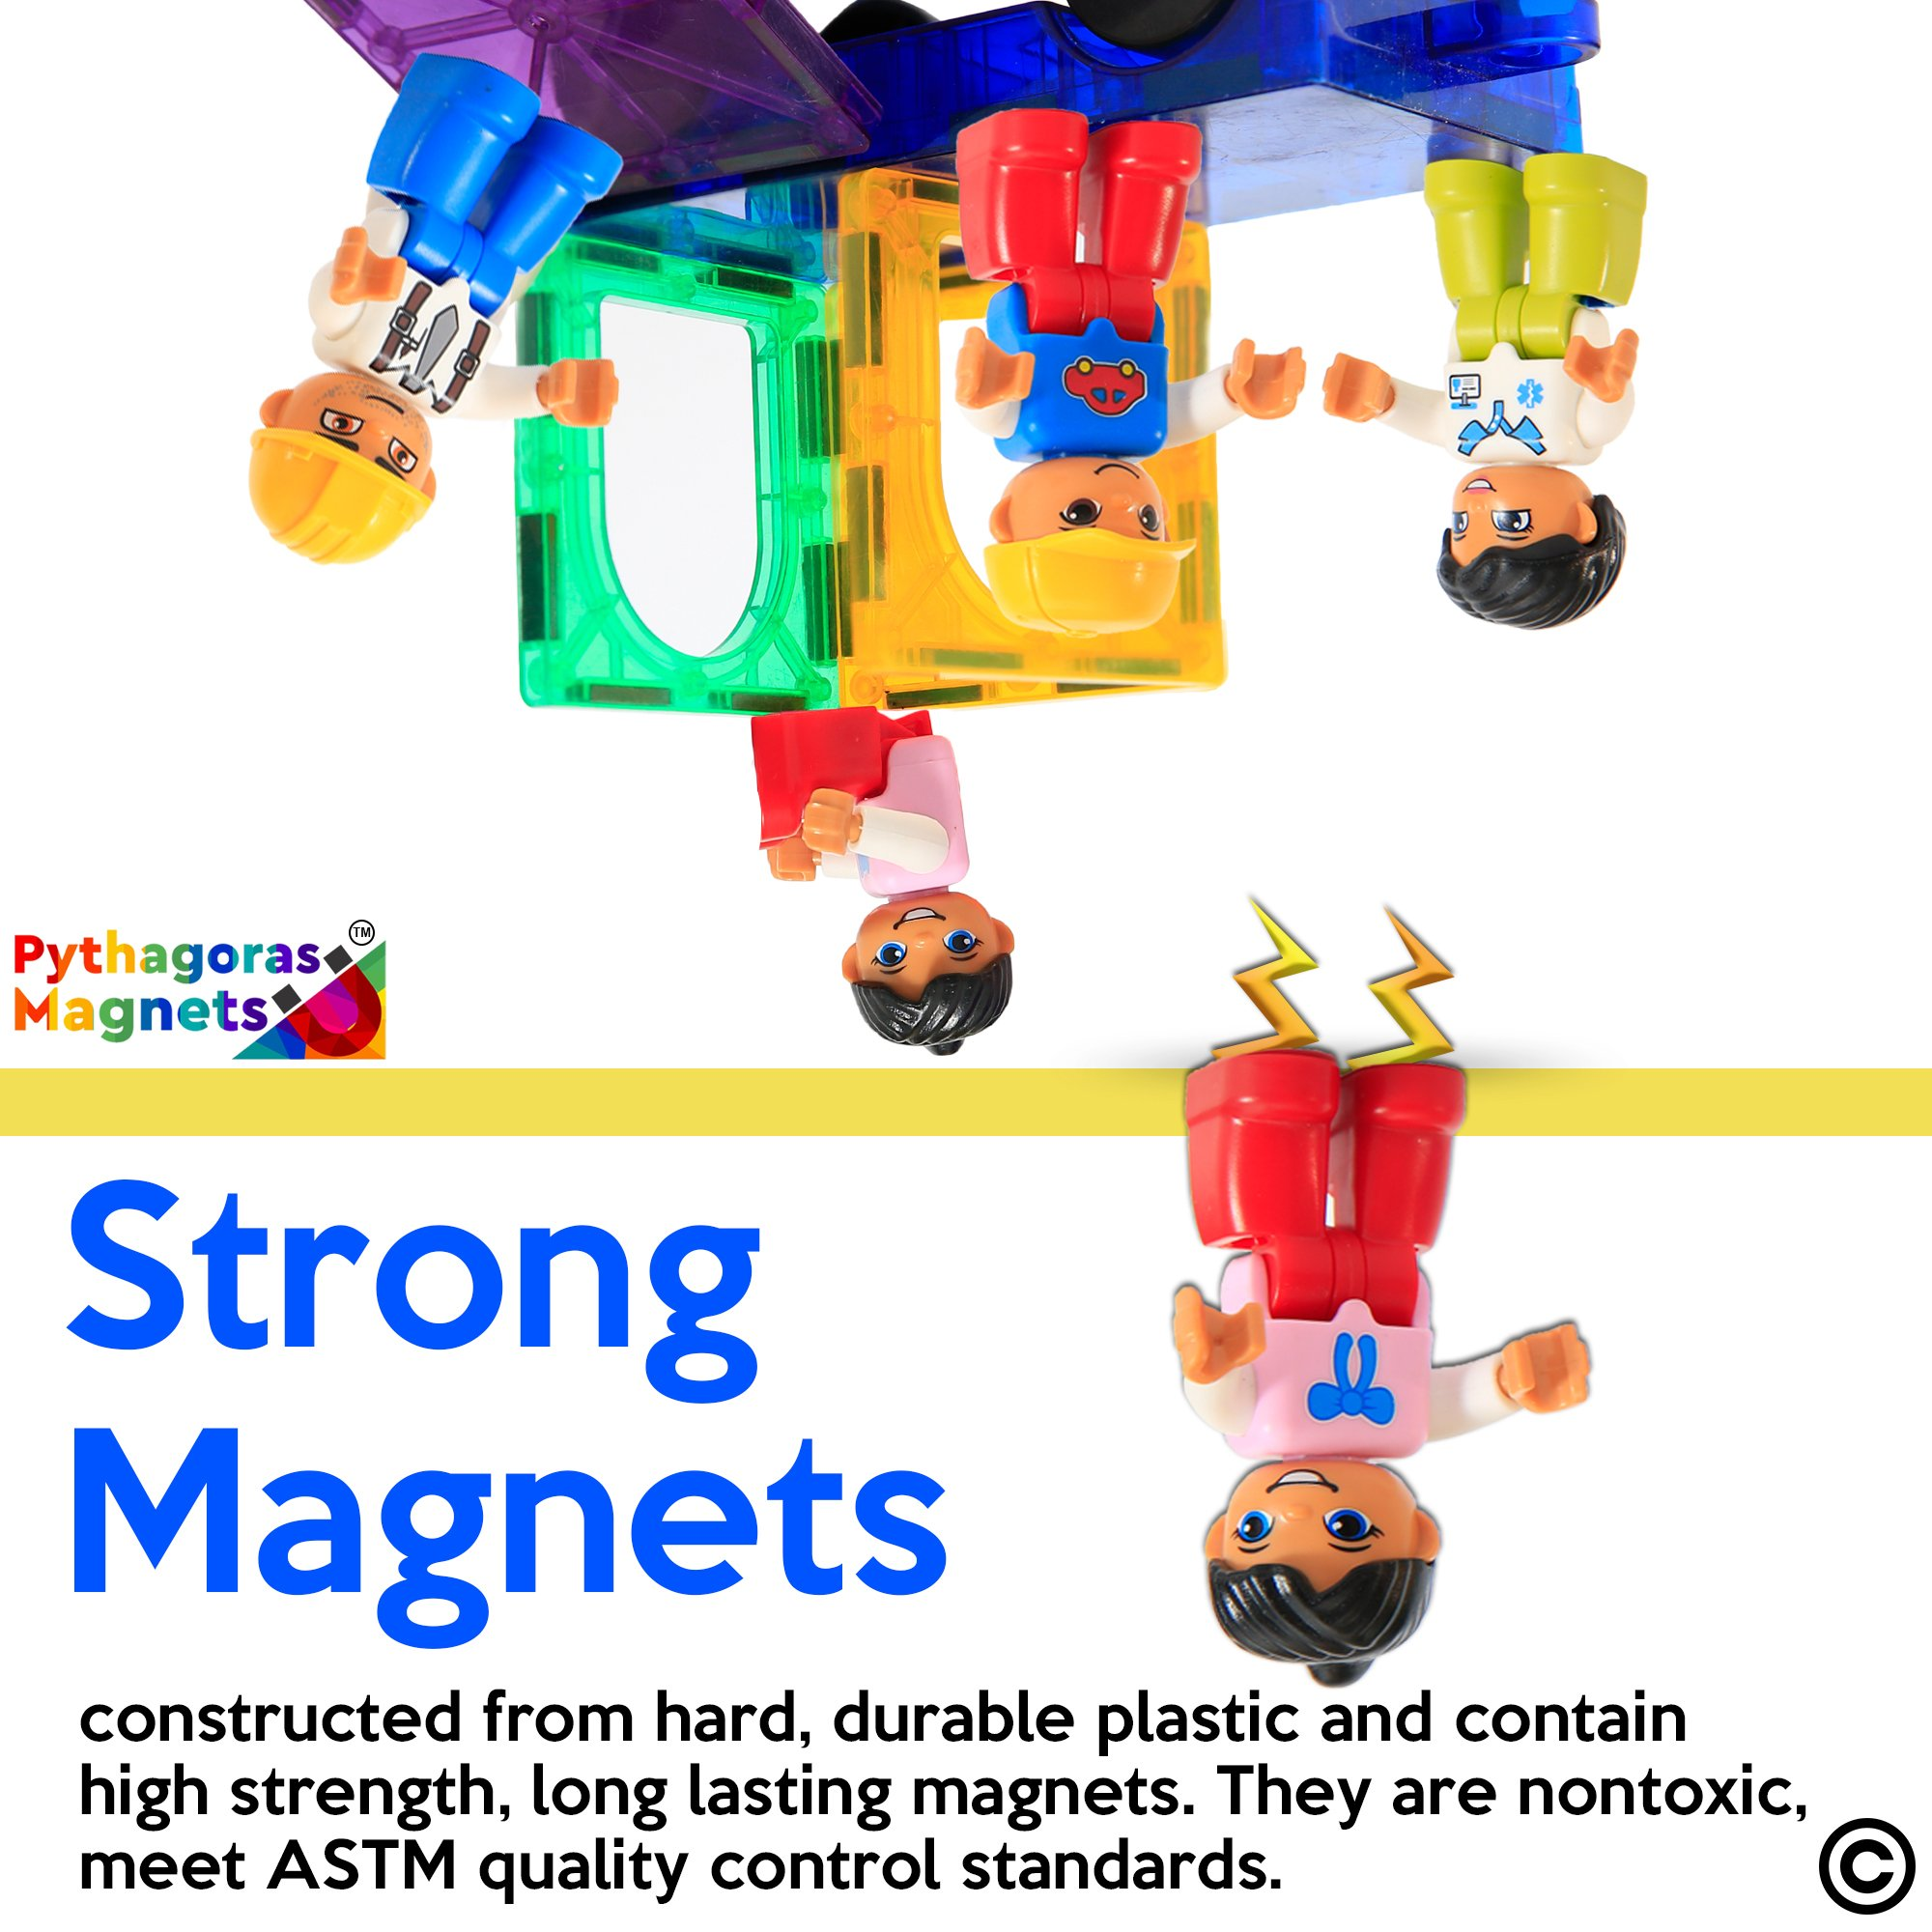 Magnetic Figures Set of 4 -Toddlers Action Toy People, Magnetic Tiles Expansion Pack for Boys and Girls - Banker Father Educational STEM Toys Add on Sets for Magnetic Blocks (3 Pack Banker Set) by Pythagoras Magnets (Image #3)